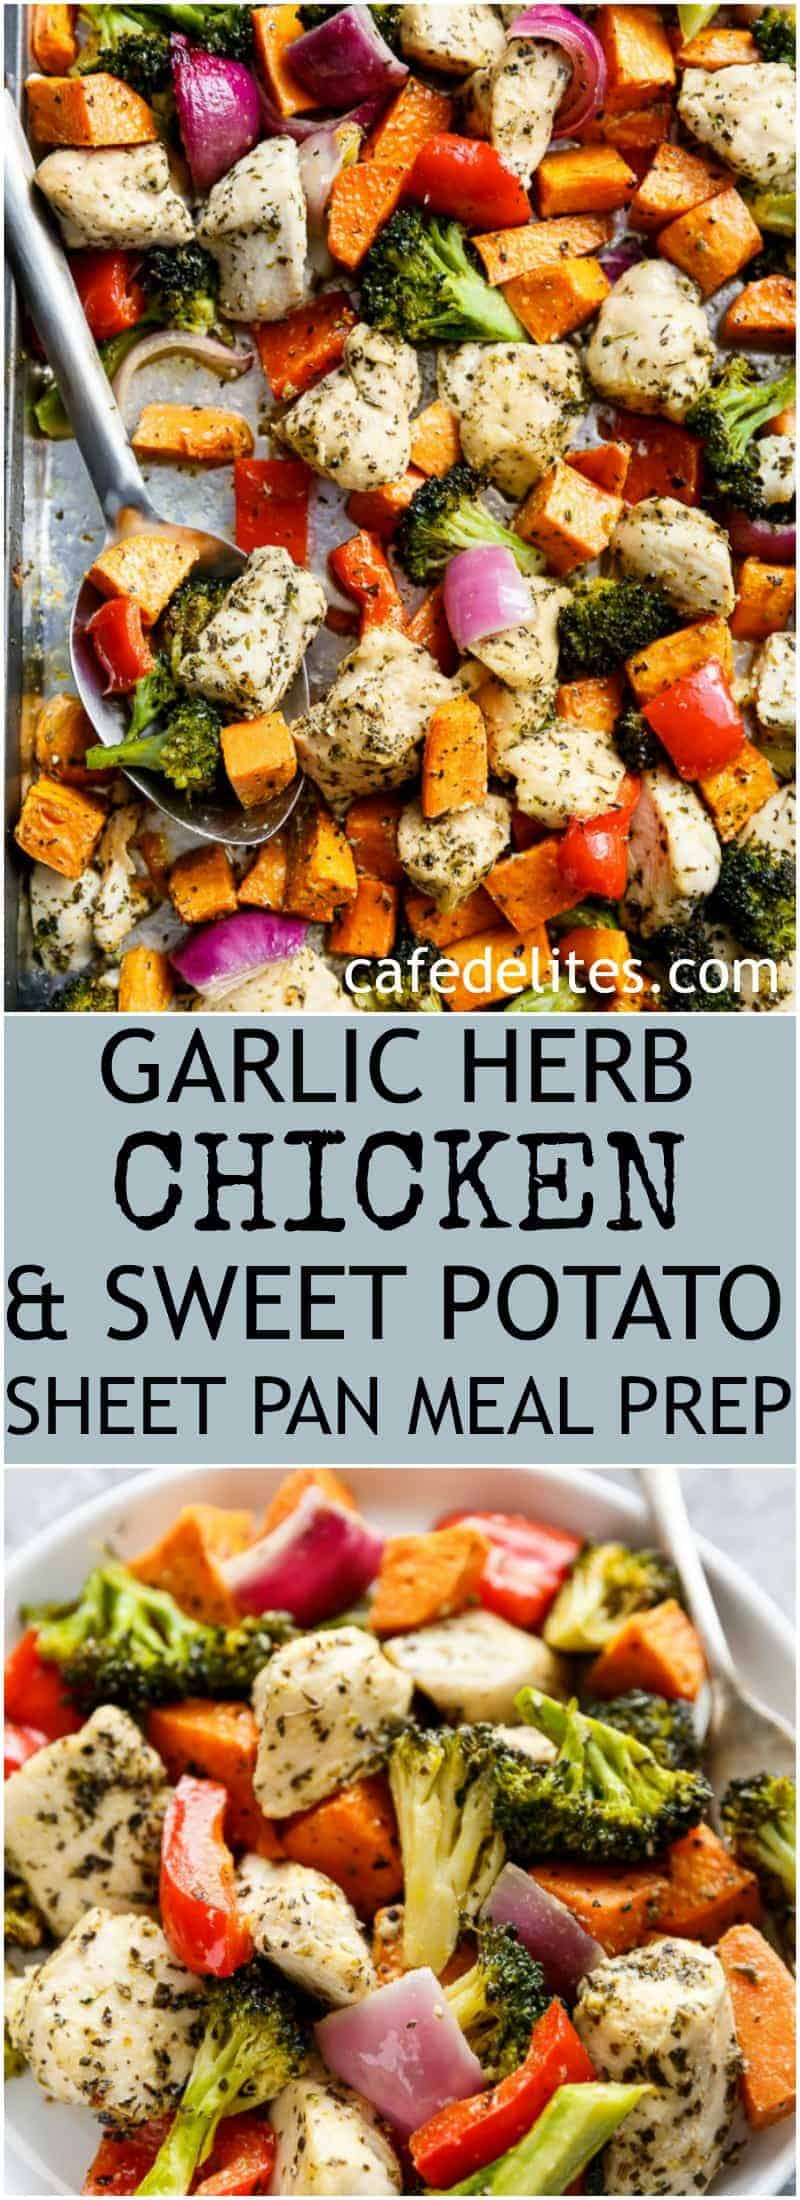 Garlic Herb Chicken & Sweet Potato Sheet Pan Meal Prep | https://cafedelites.com